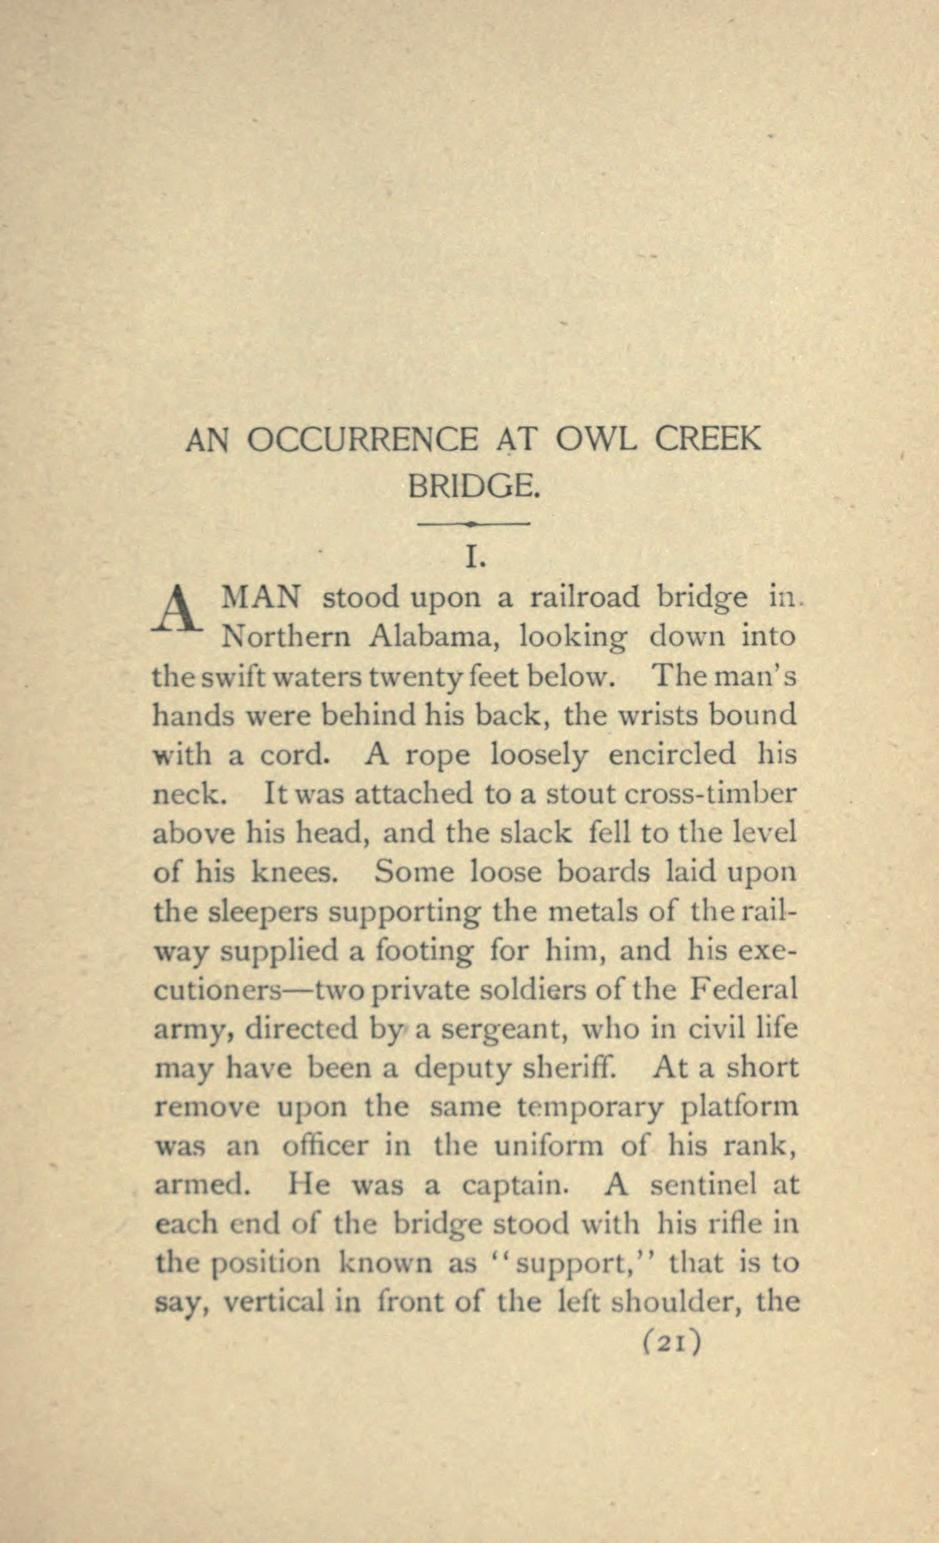 an occurrence at owl creek bridge research paper An occurrence at owl creek bridge questions and you that can answer any question you might have on an occurrence at owl creek bridge research paper topics.